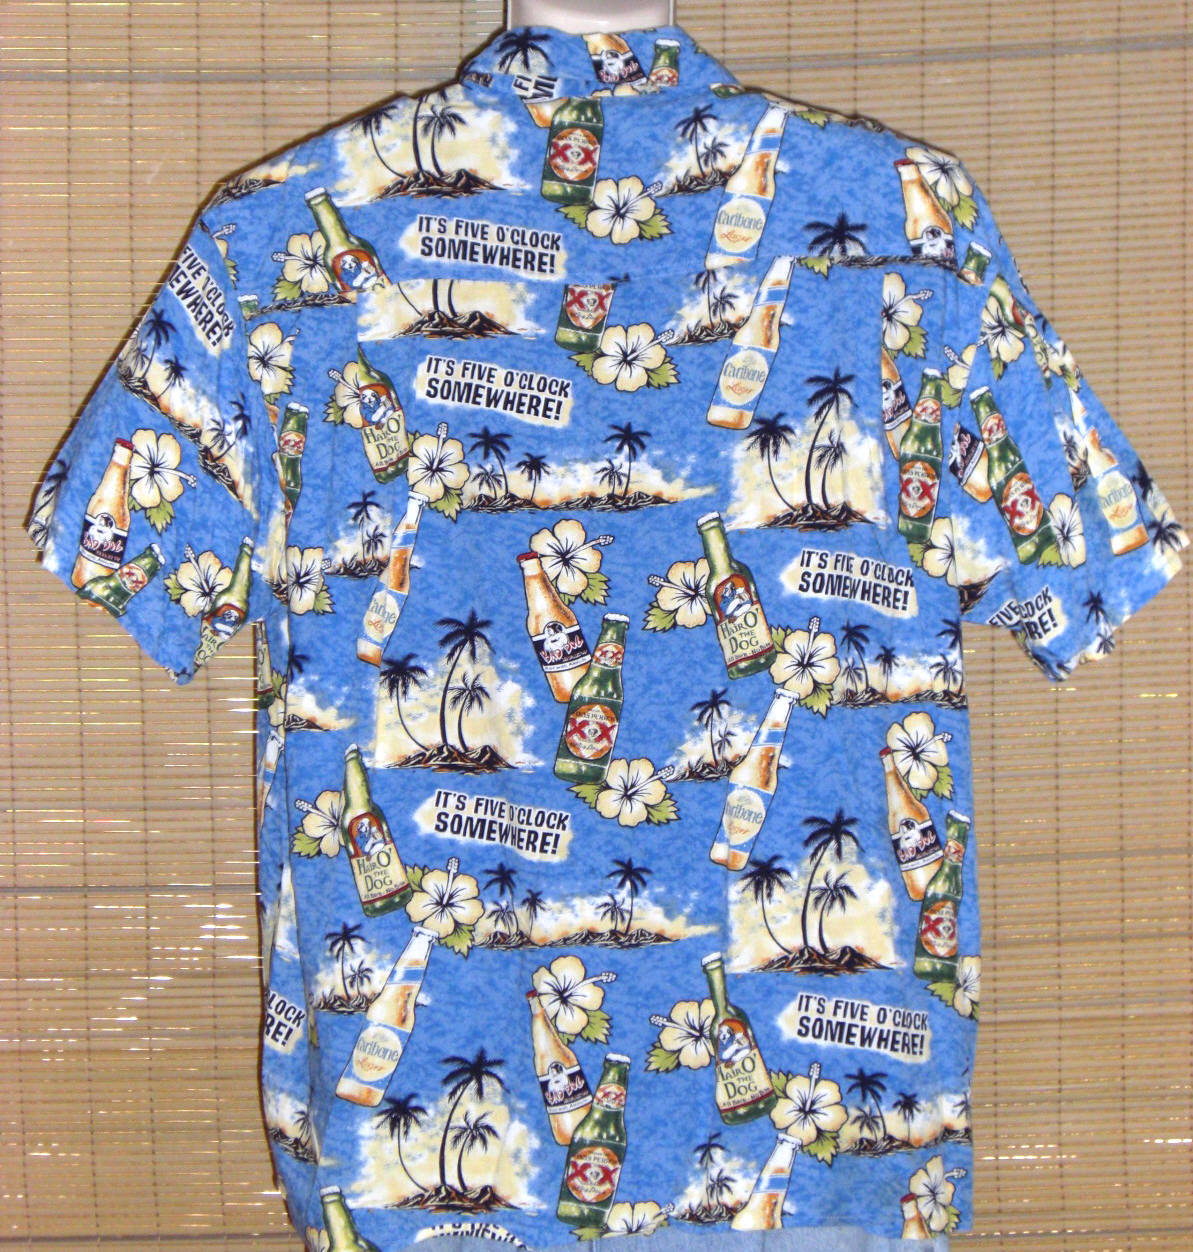 BIG DOGS Hawaiian Shirt Size Large Blue White Beer 5 O'Clock Somewhere